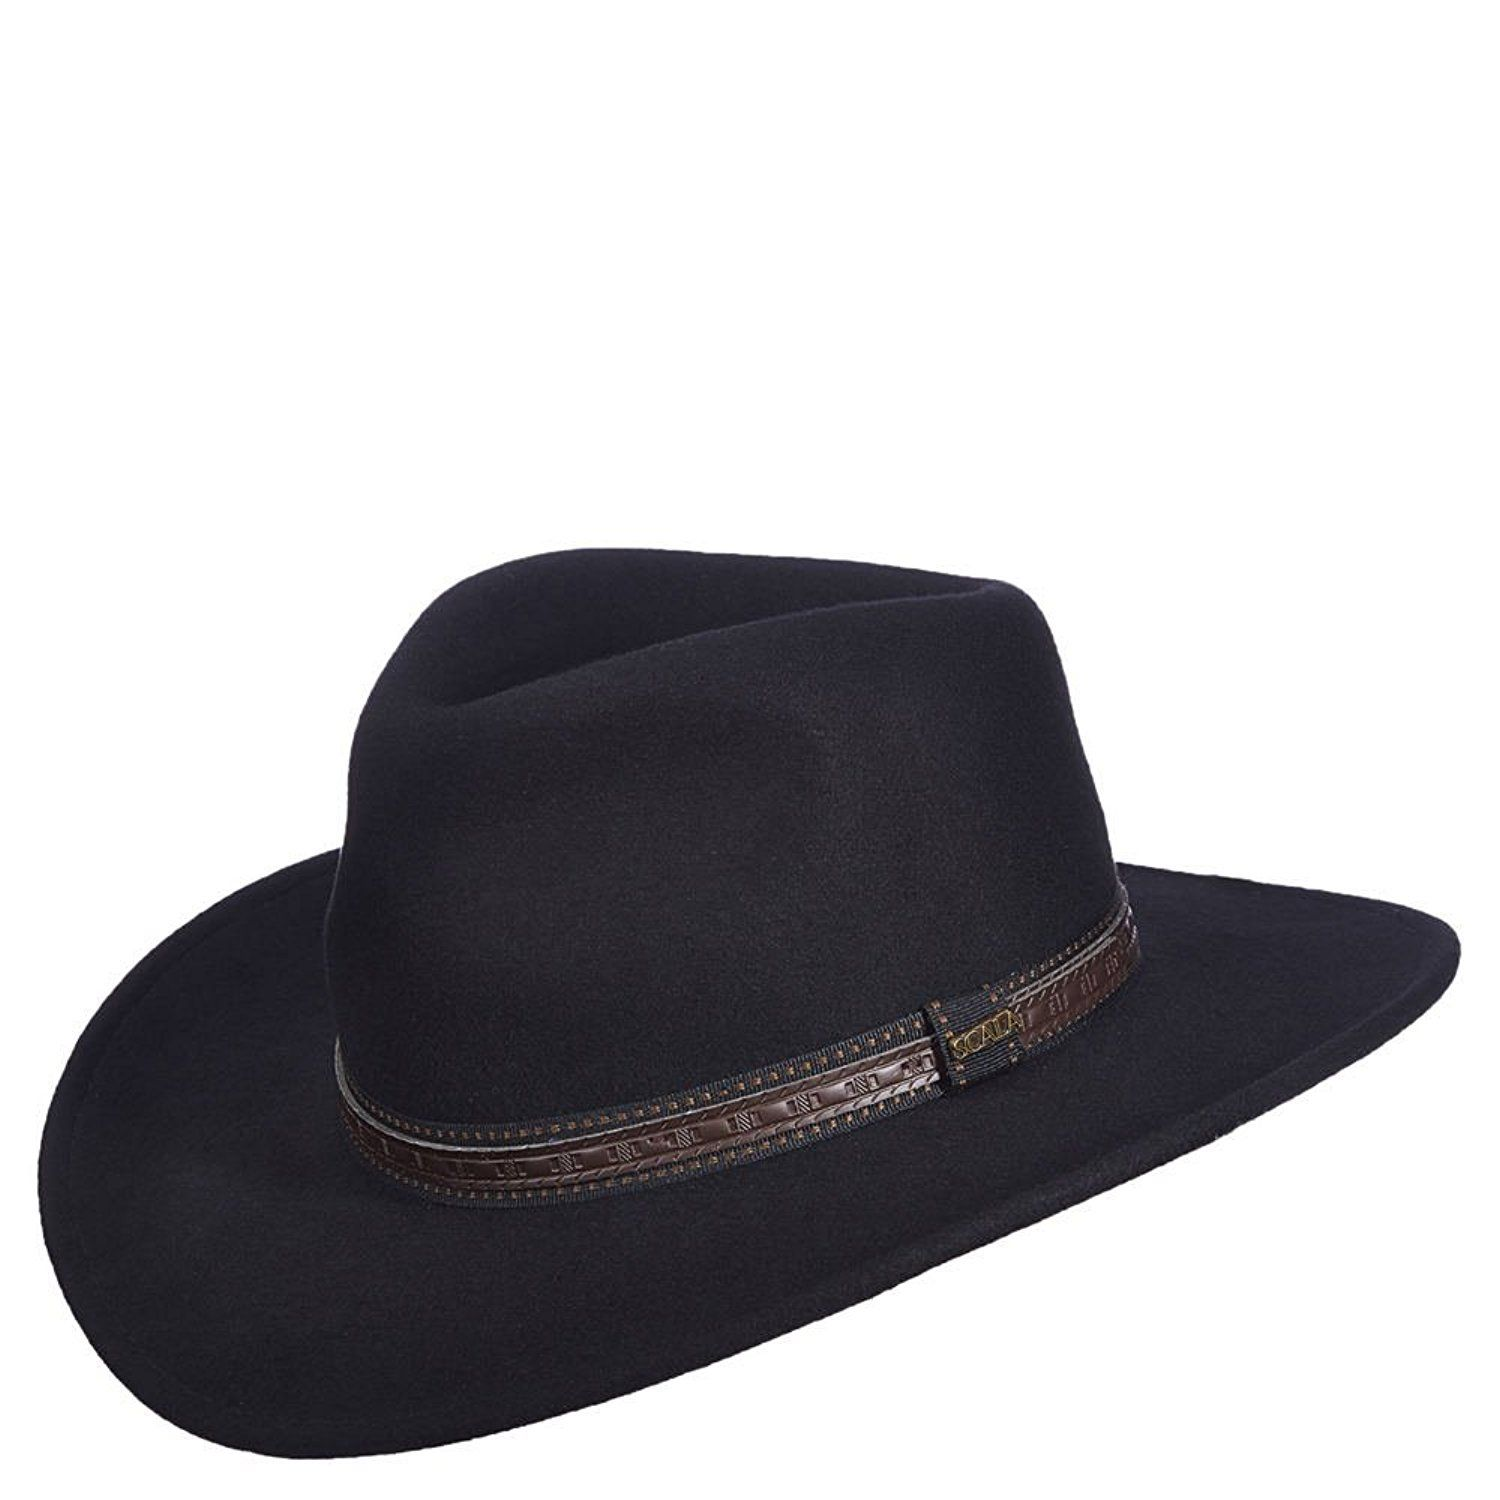 Dantiya Men Unisex Straw Cowboy Hat